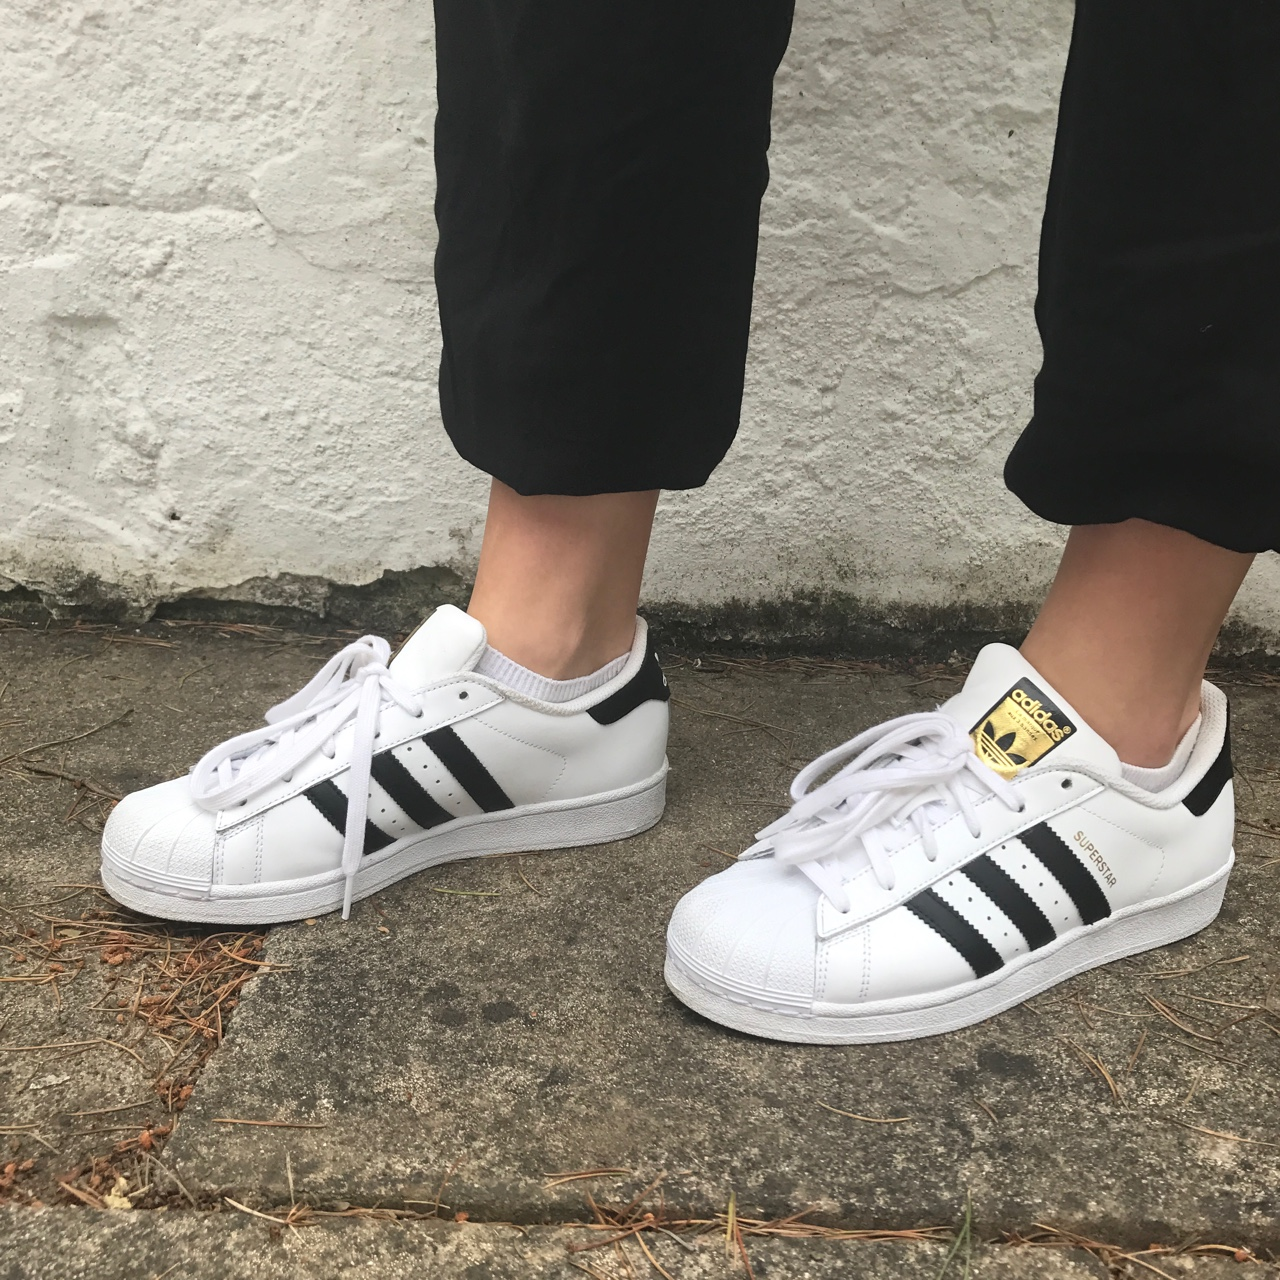 Size 5 12 adidas superstar shoes in black and white Depop